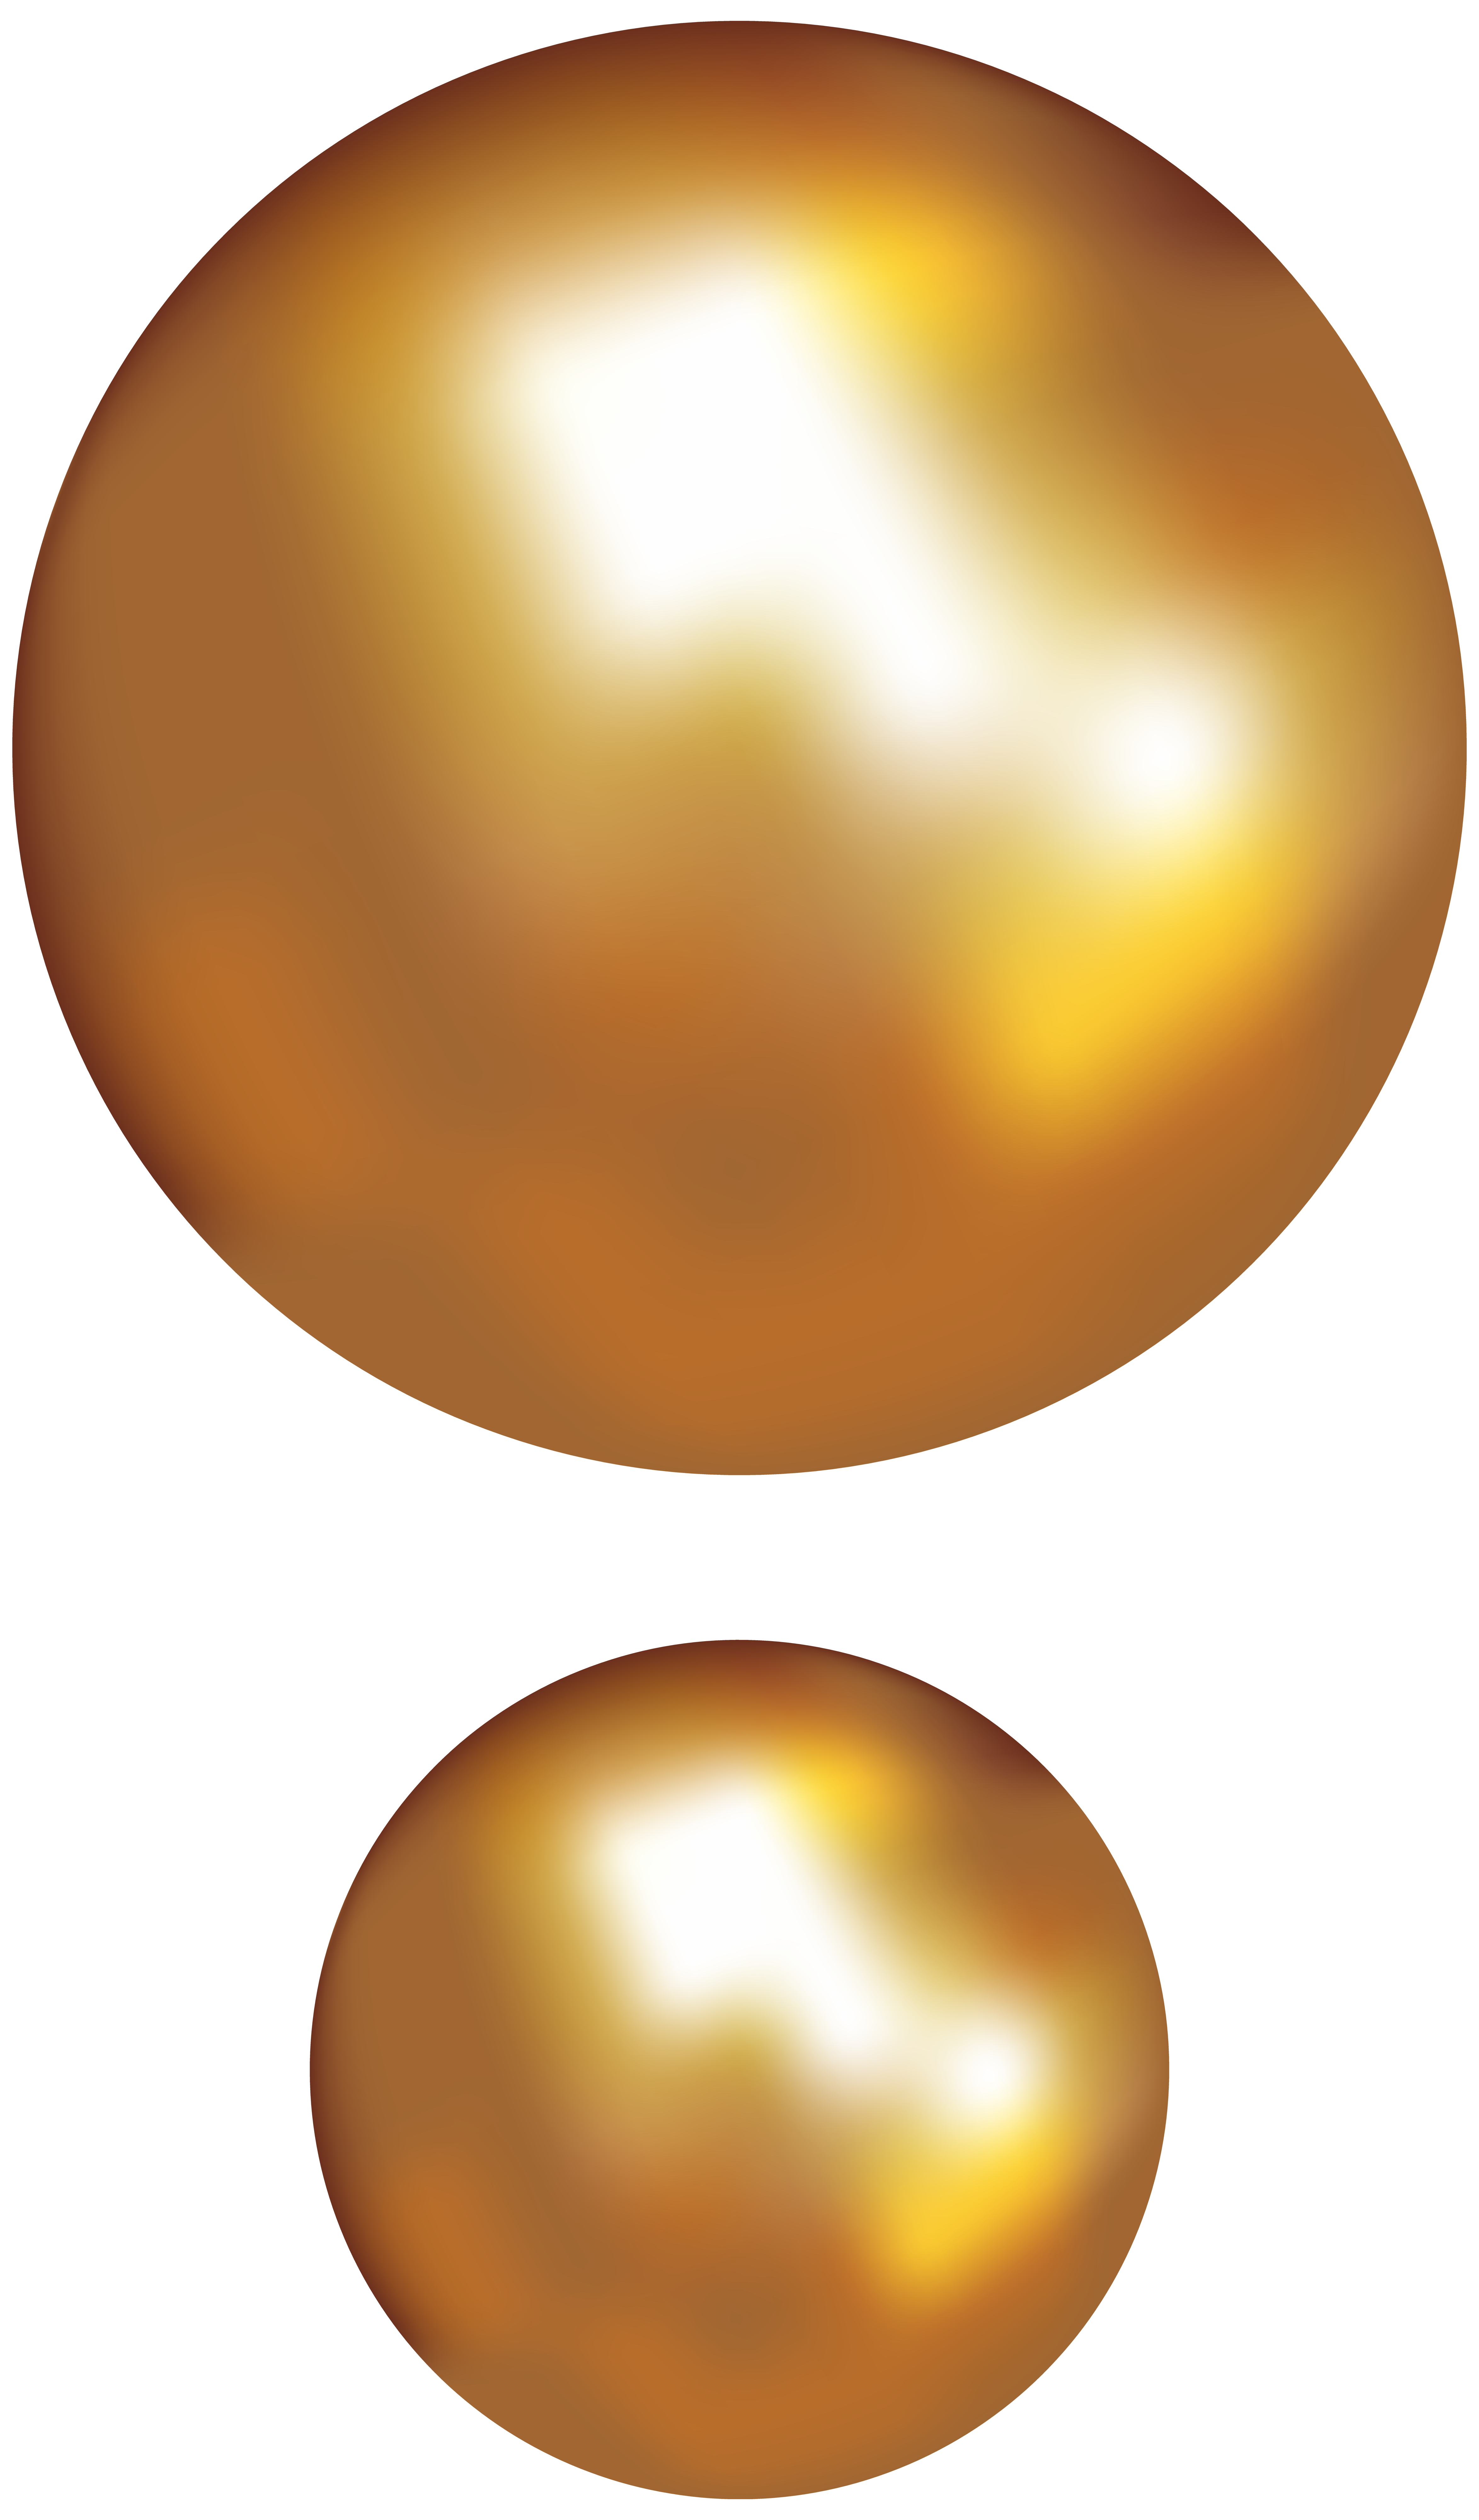 Pearl clipart png. Gold pearls transparent clip